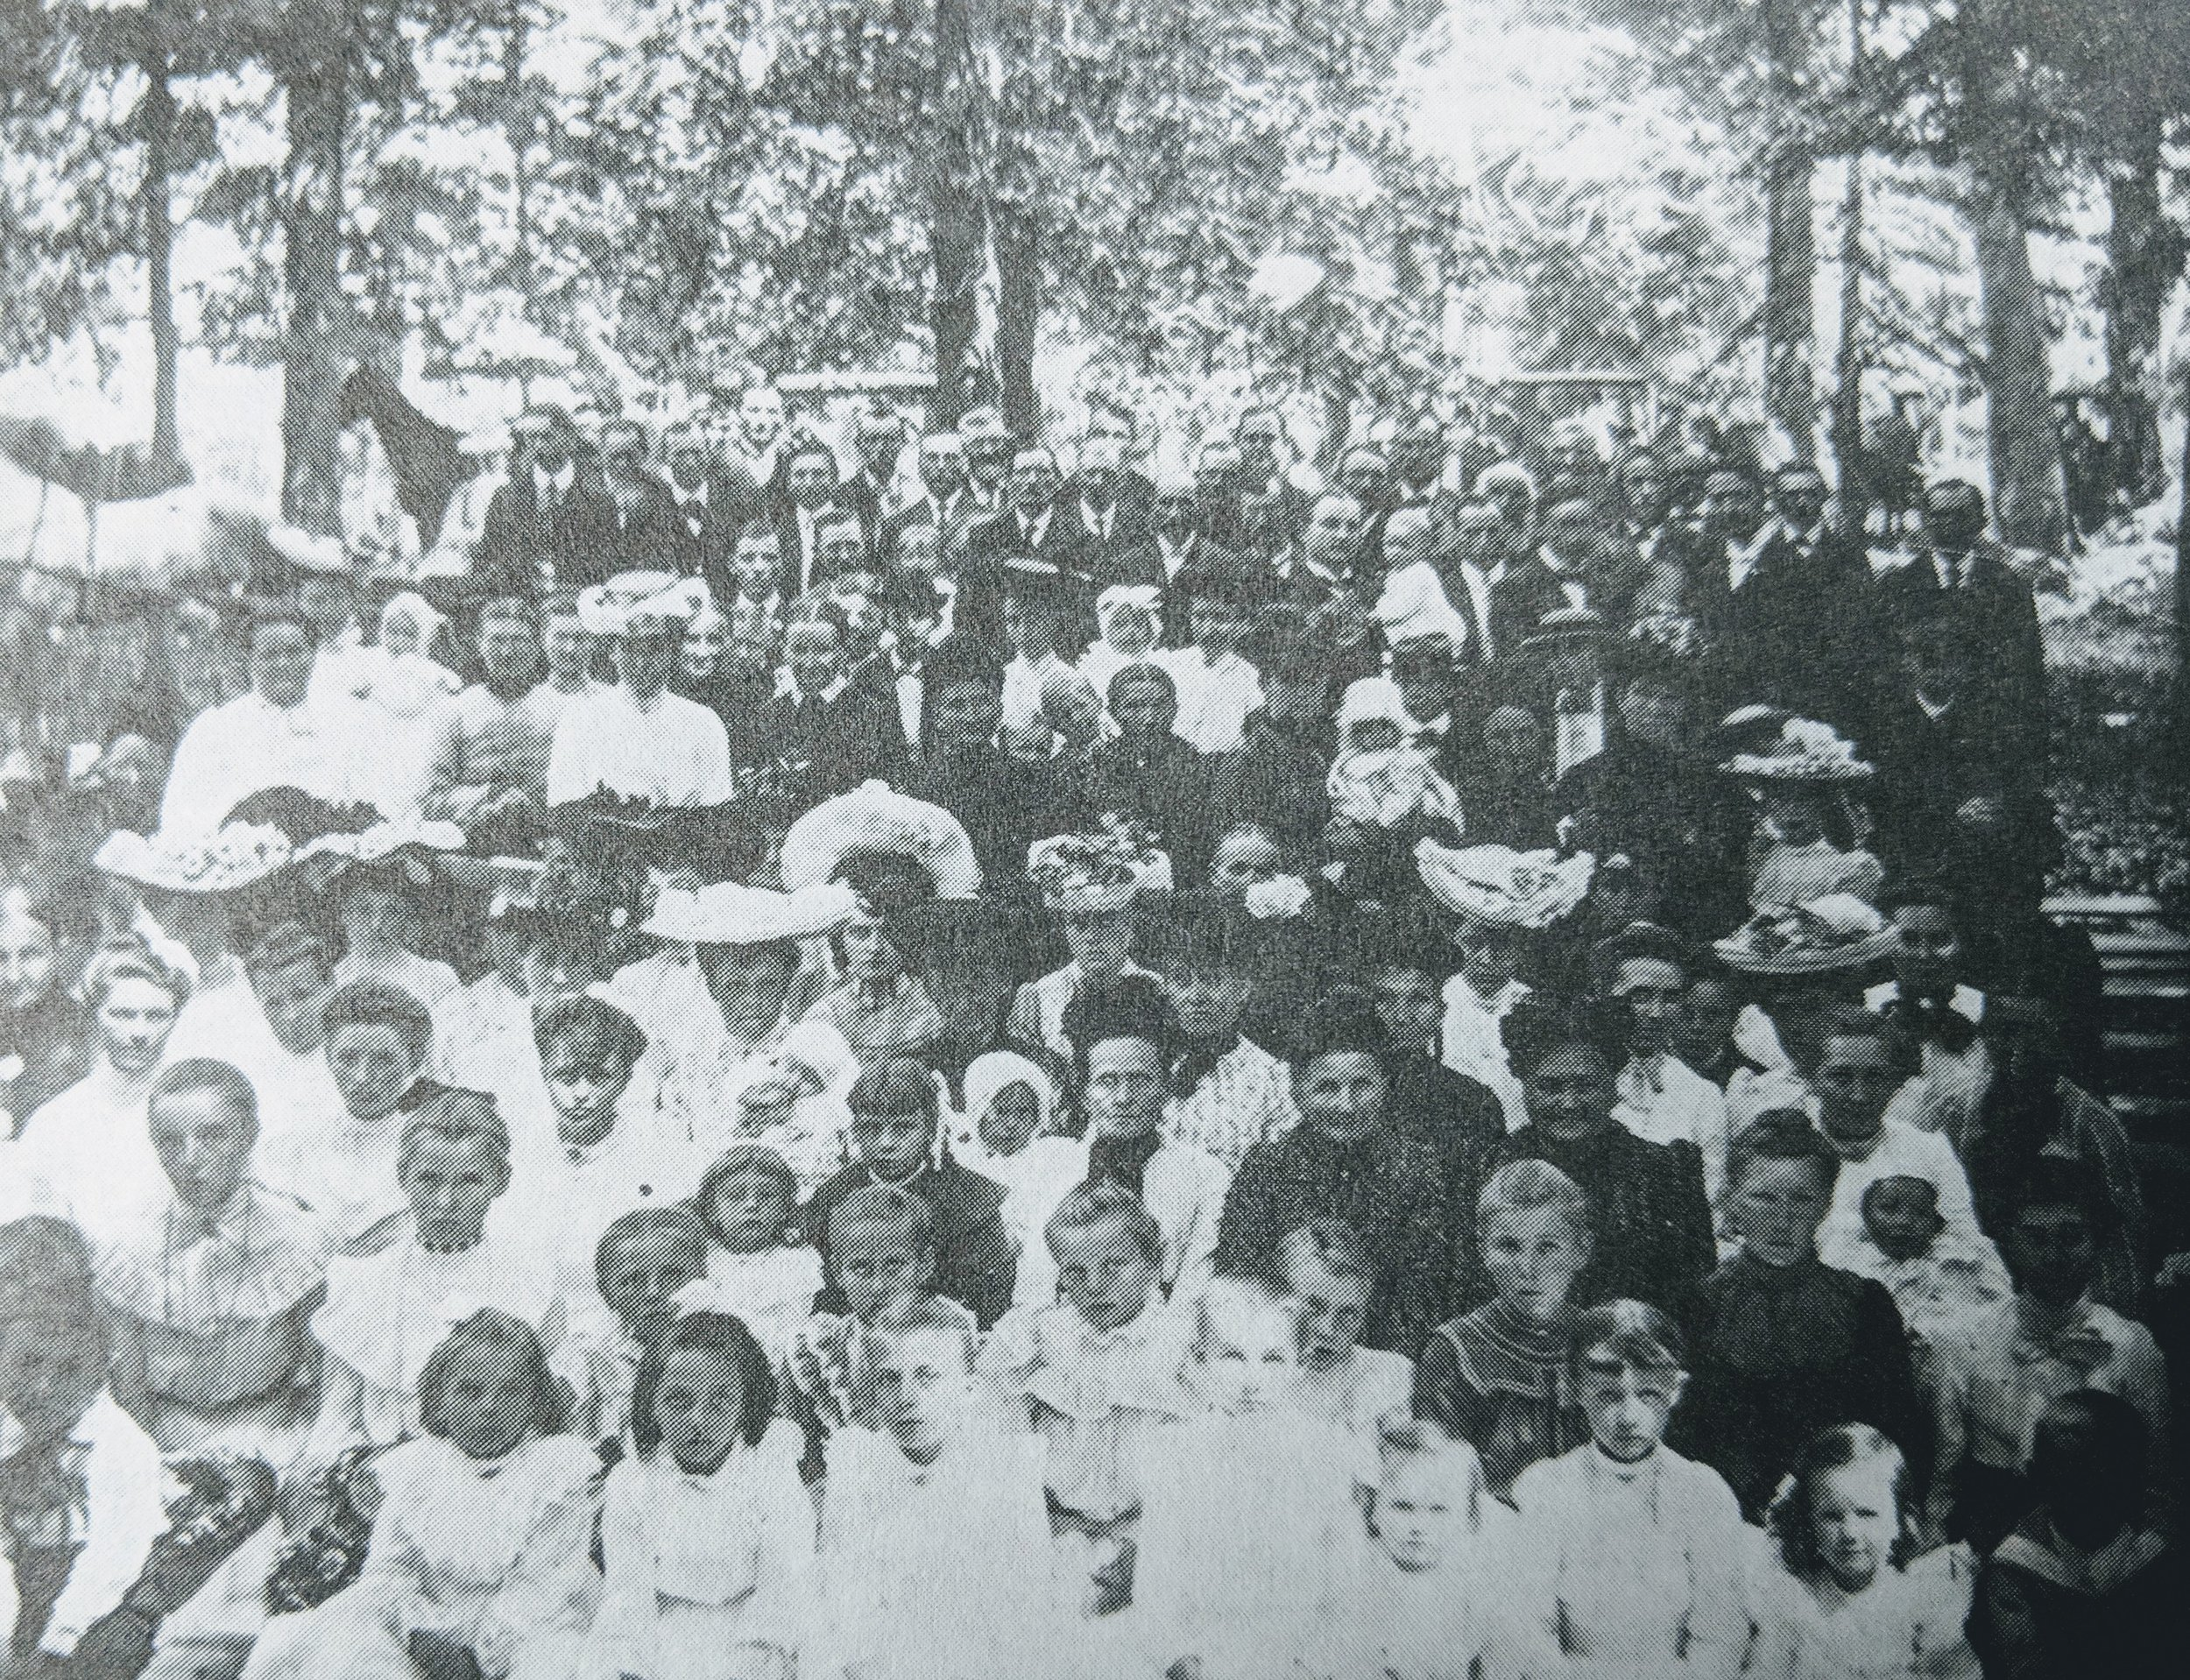 Mission Festival held in the woods in the early 1900's